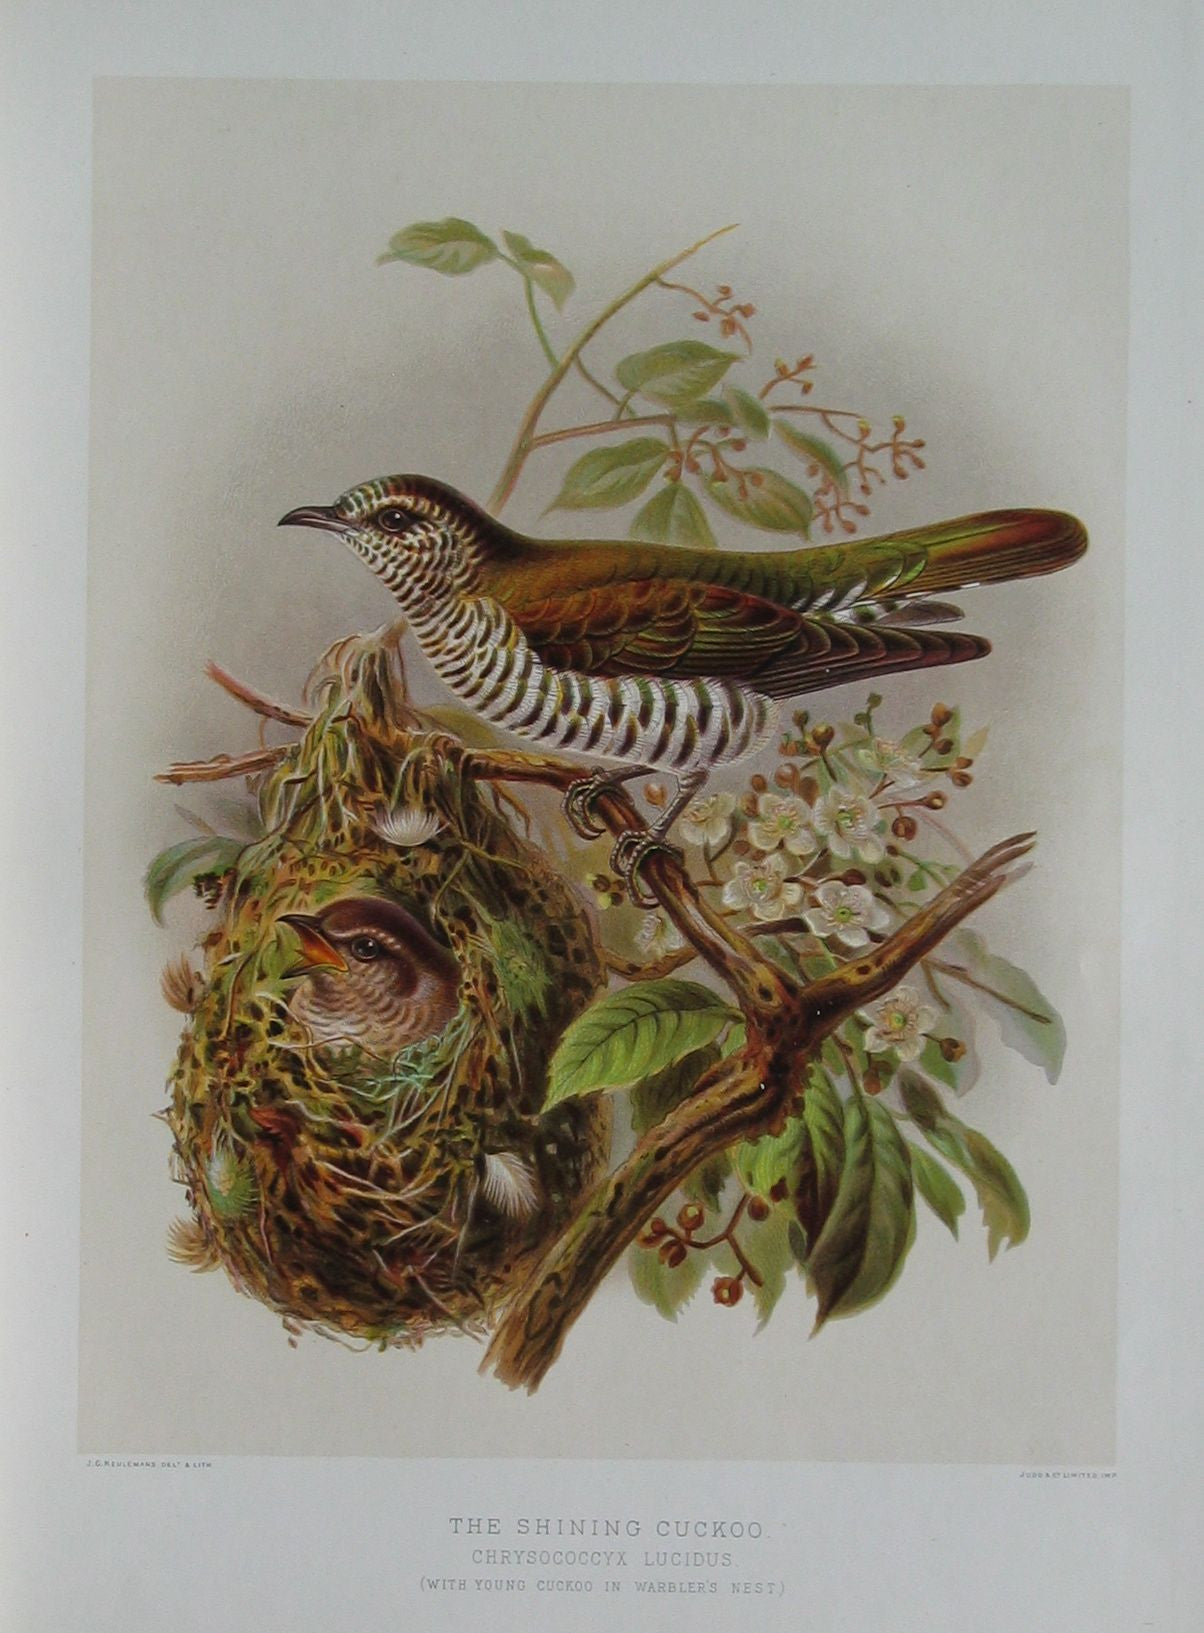 Shining Cuckoo (with young cuckoo in warbler's nest)